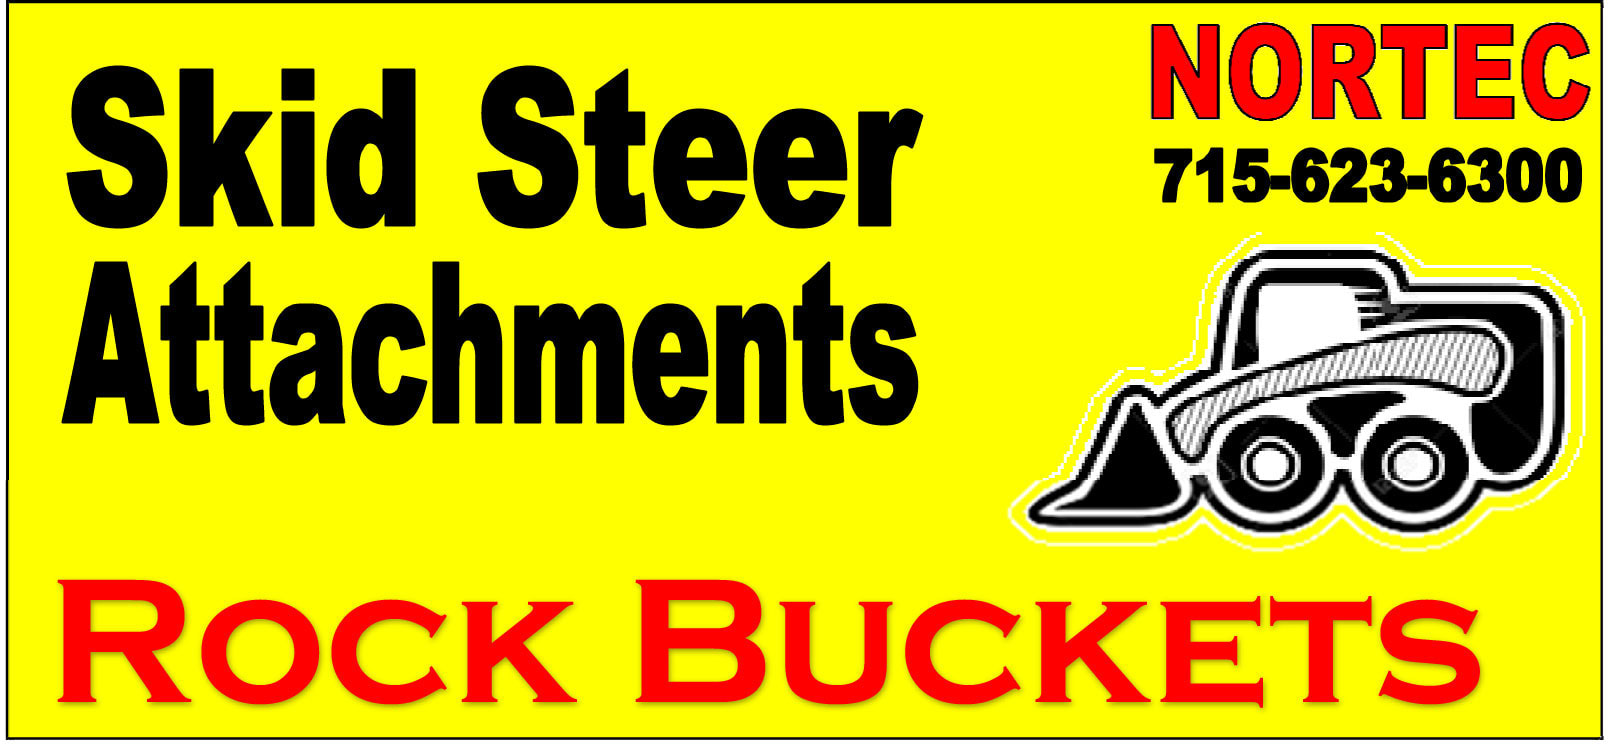 41C Skid Steer Attachment Rock Buckets - NORTEC USA